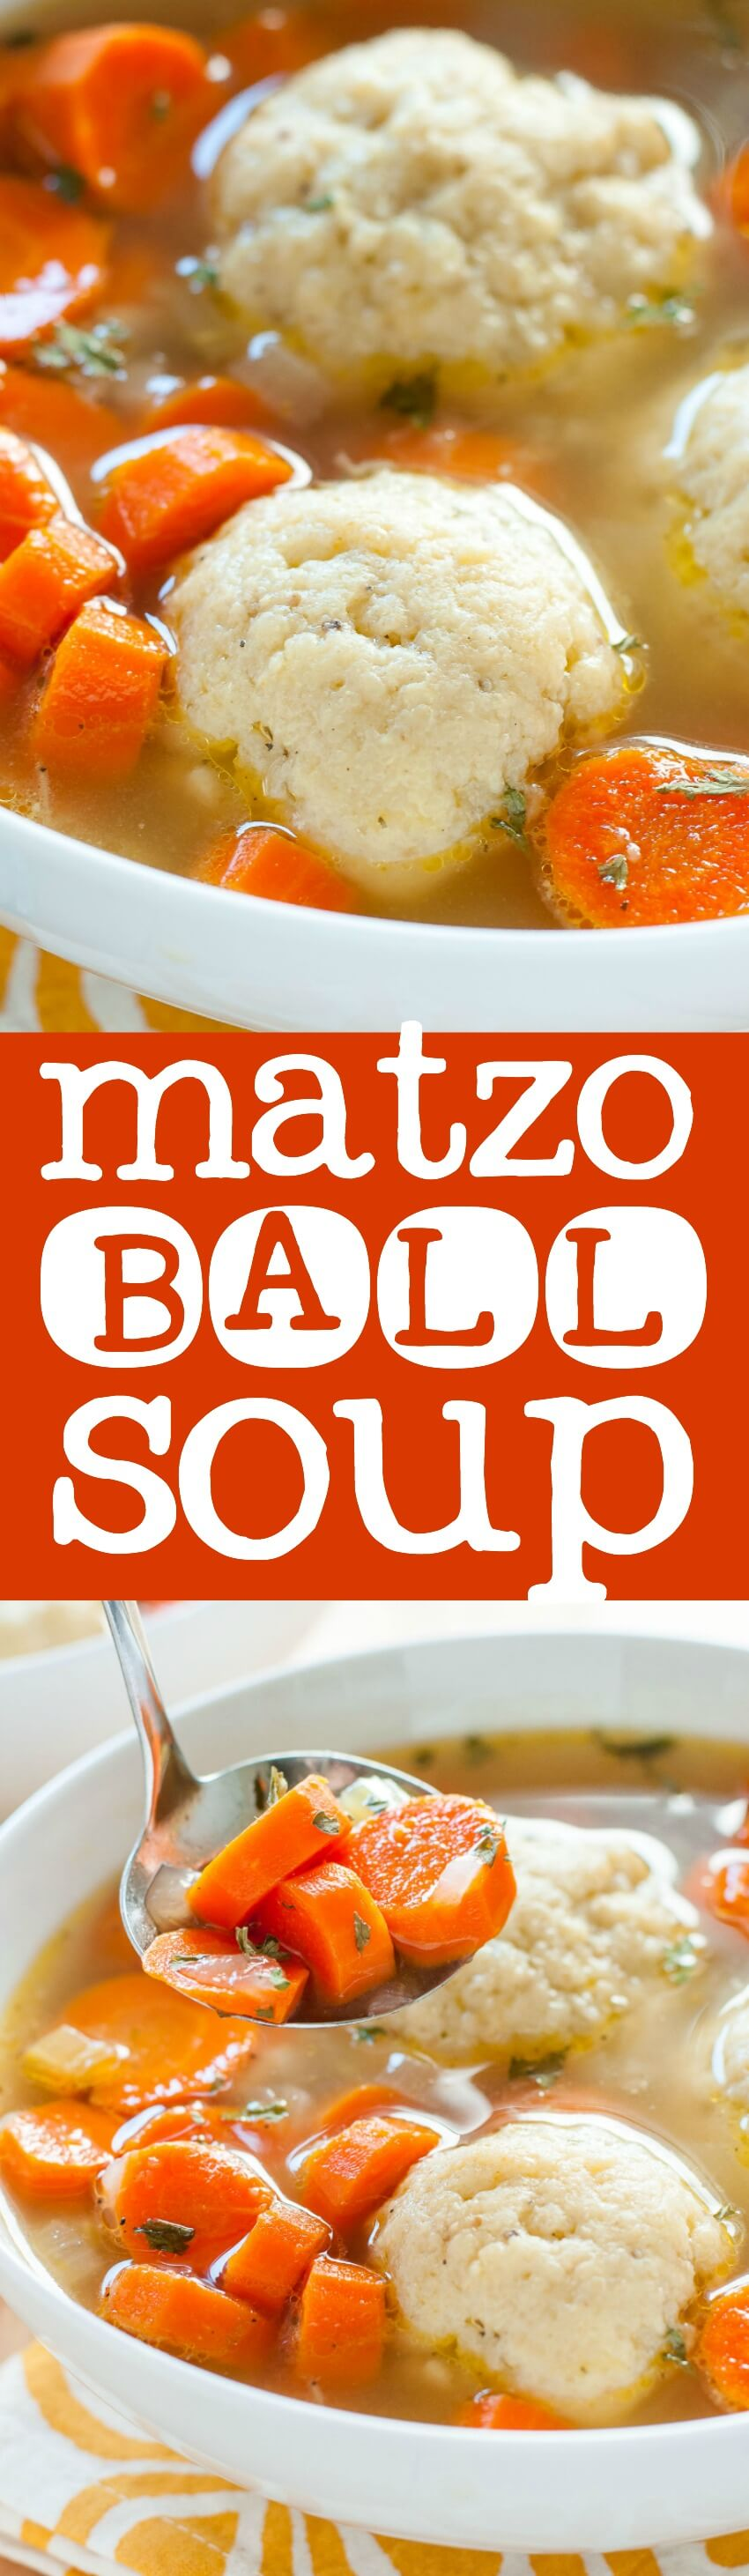 This vegetable packed matzo ball soup is a warm hug in a bowl and positively delicious! It's myall-time favorite soup to slurp when I'm feeling under the weather and a must for sweater weather!